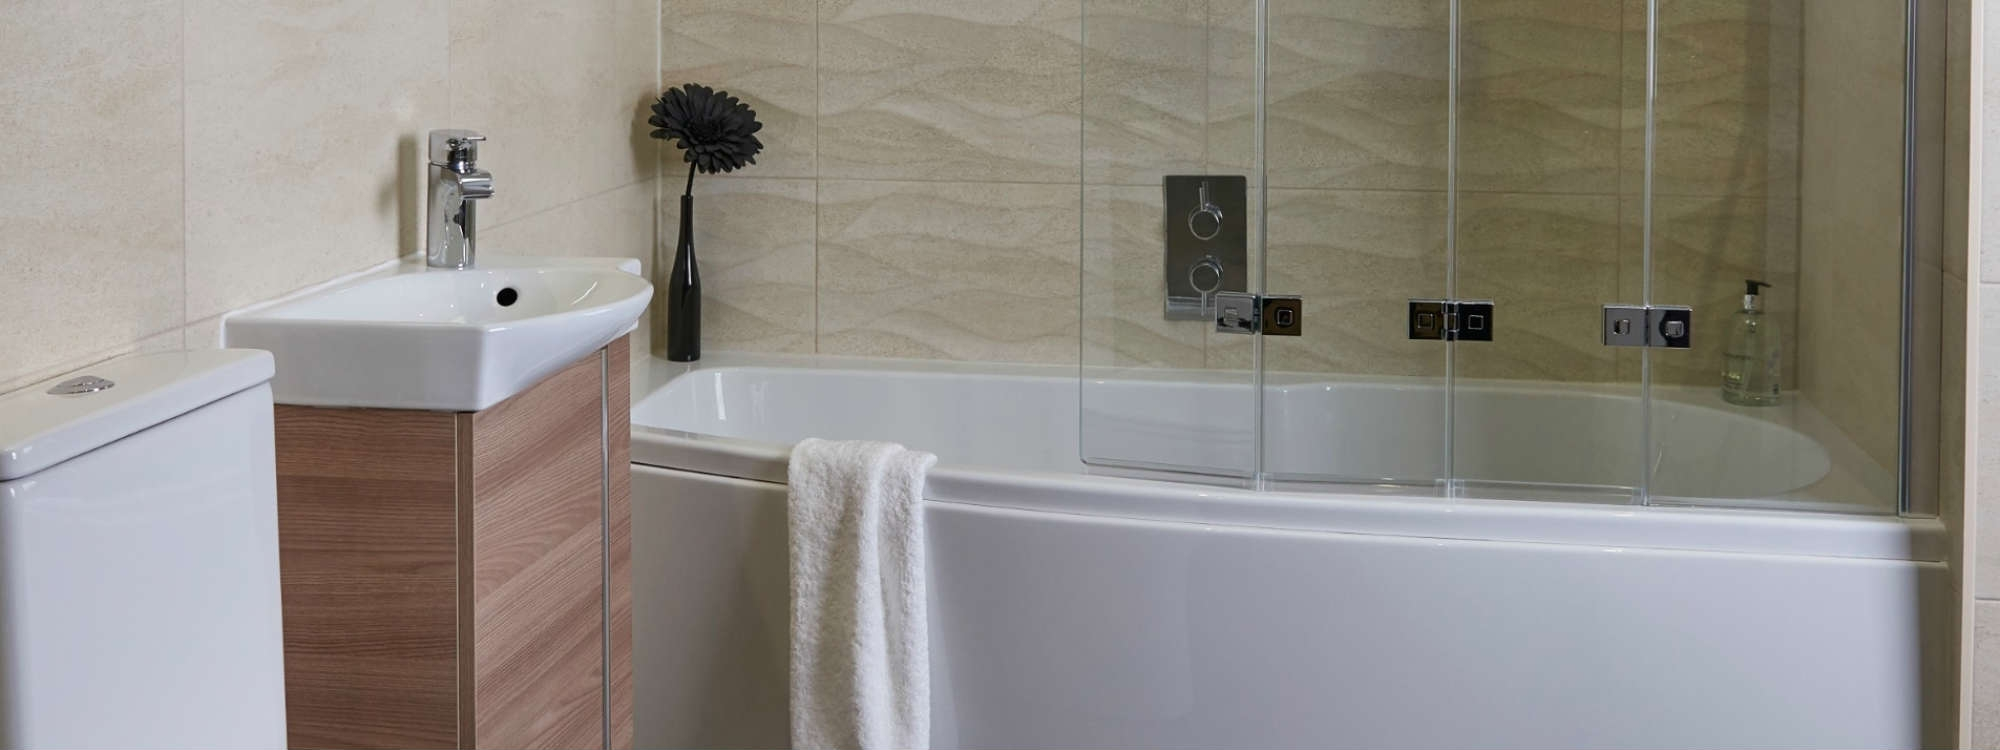 compact bathroom designs at more bathrooms leeds these small compact bathrooms and find modern bathroom